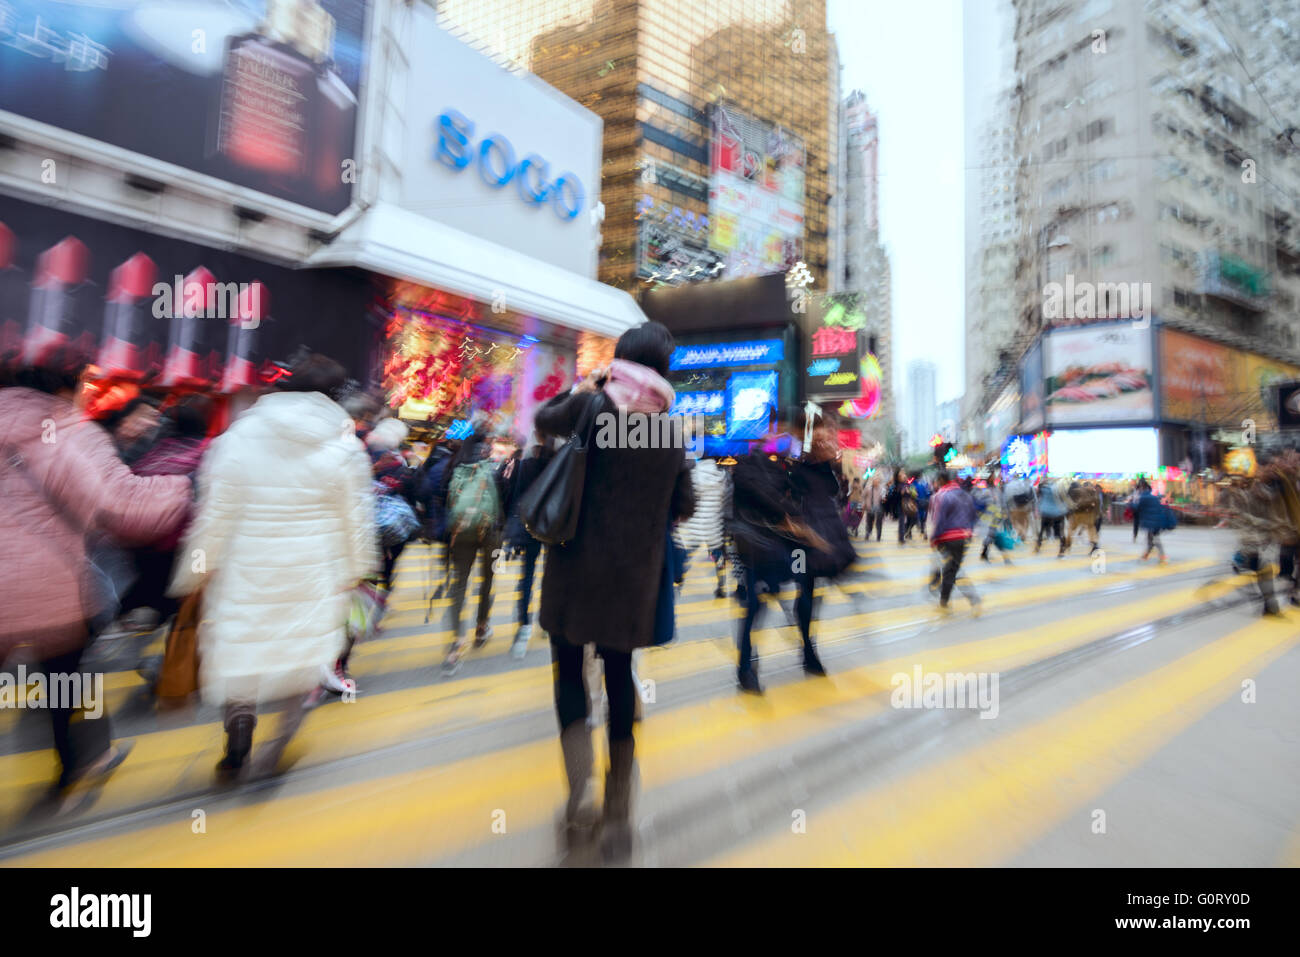 Hong Kong SAR, China - Jan 27 2016: blured images of the crowded streets at the Hennessy Road, Causeway Bay. - Stock Image